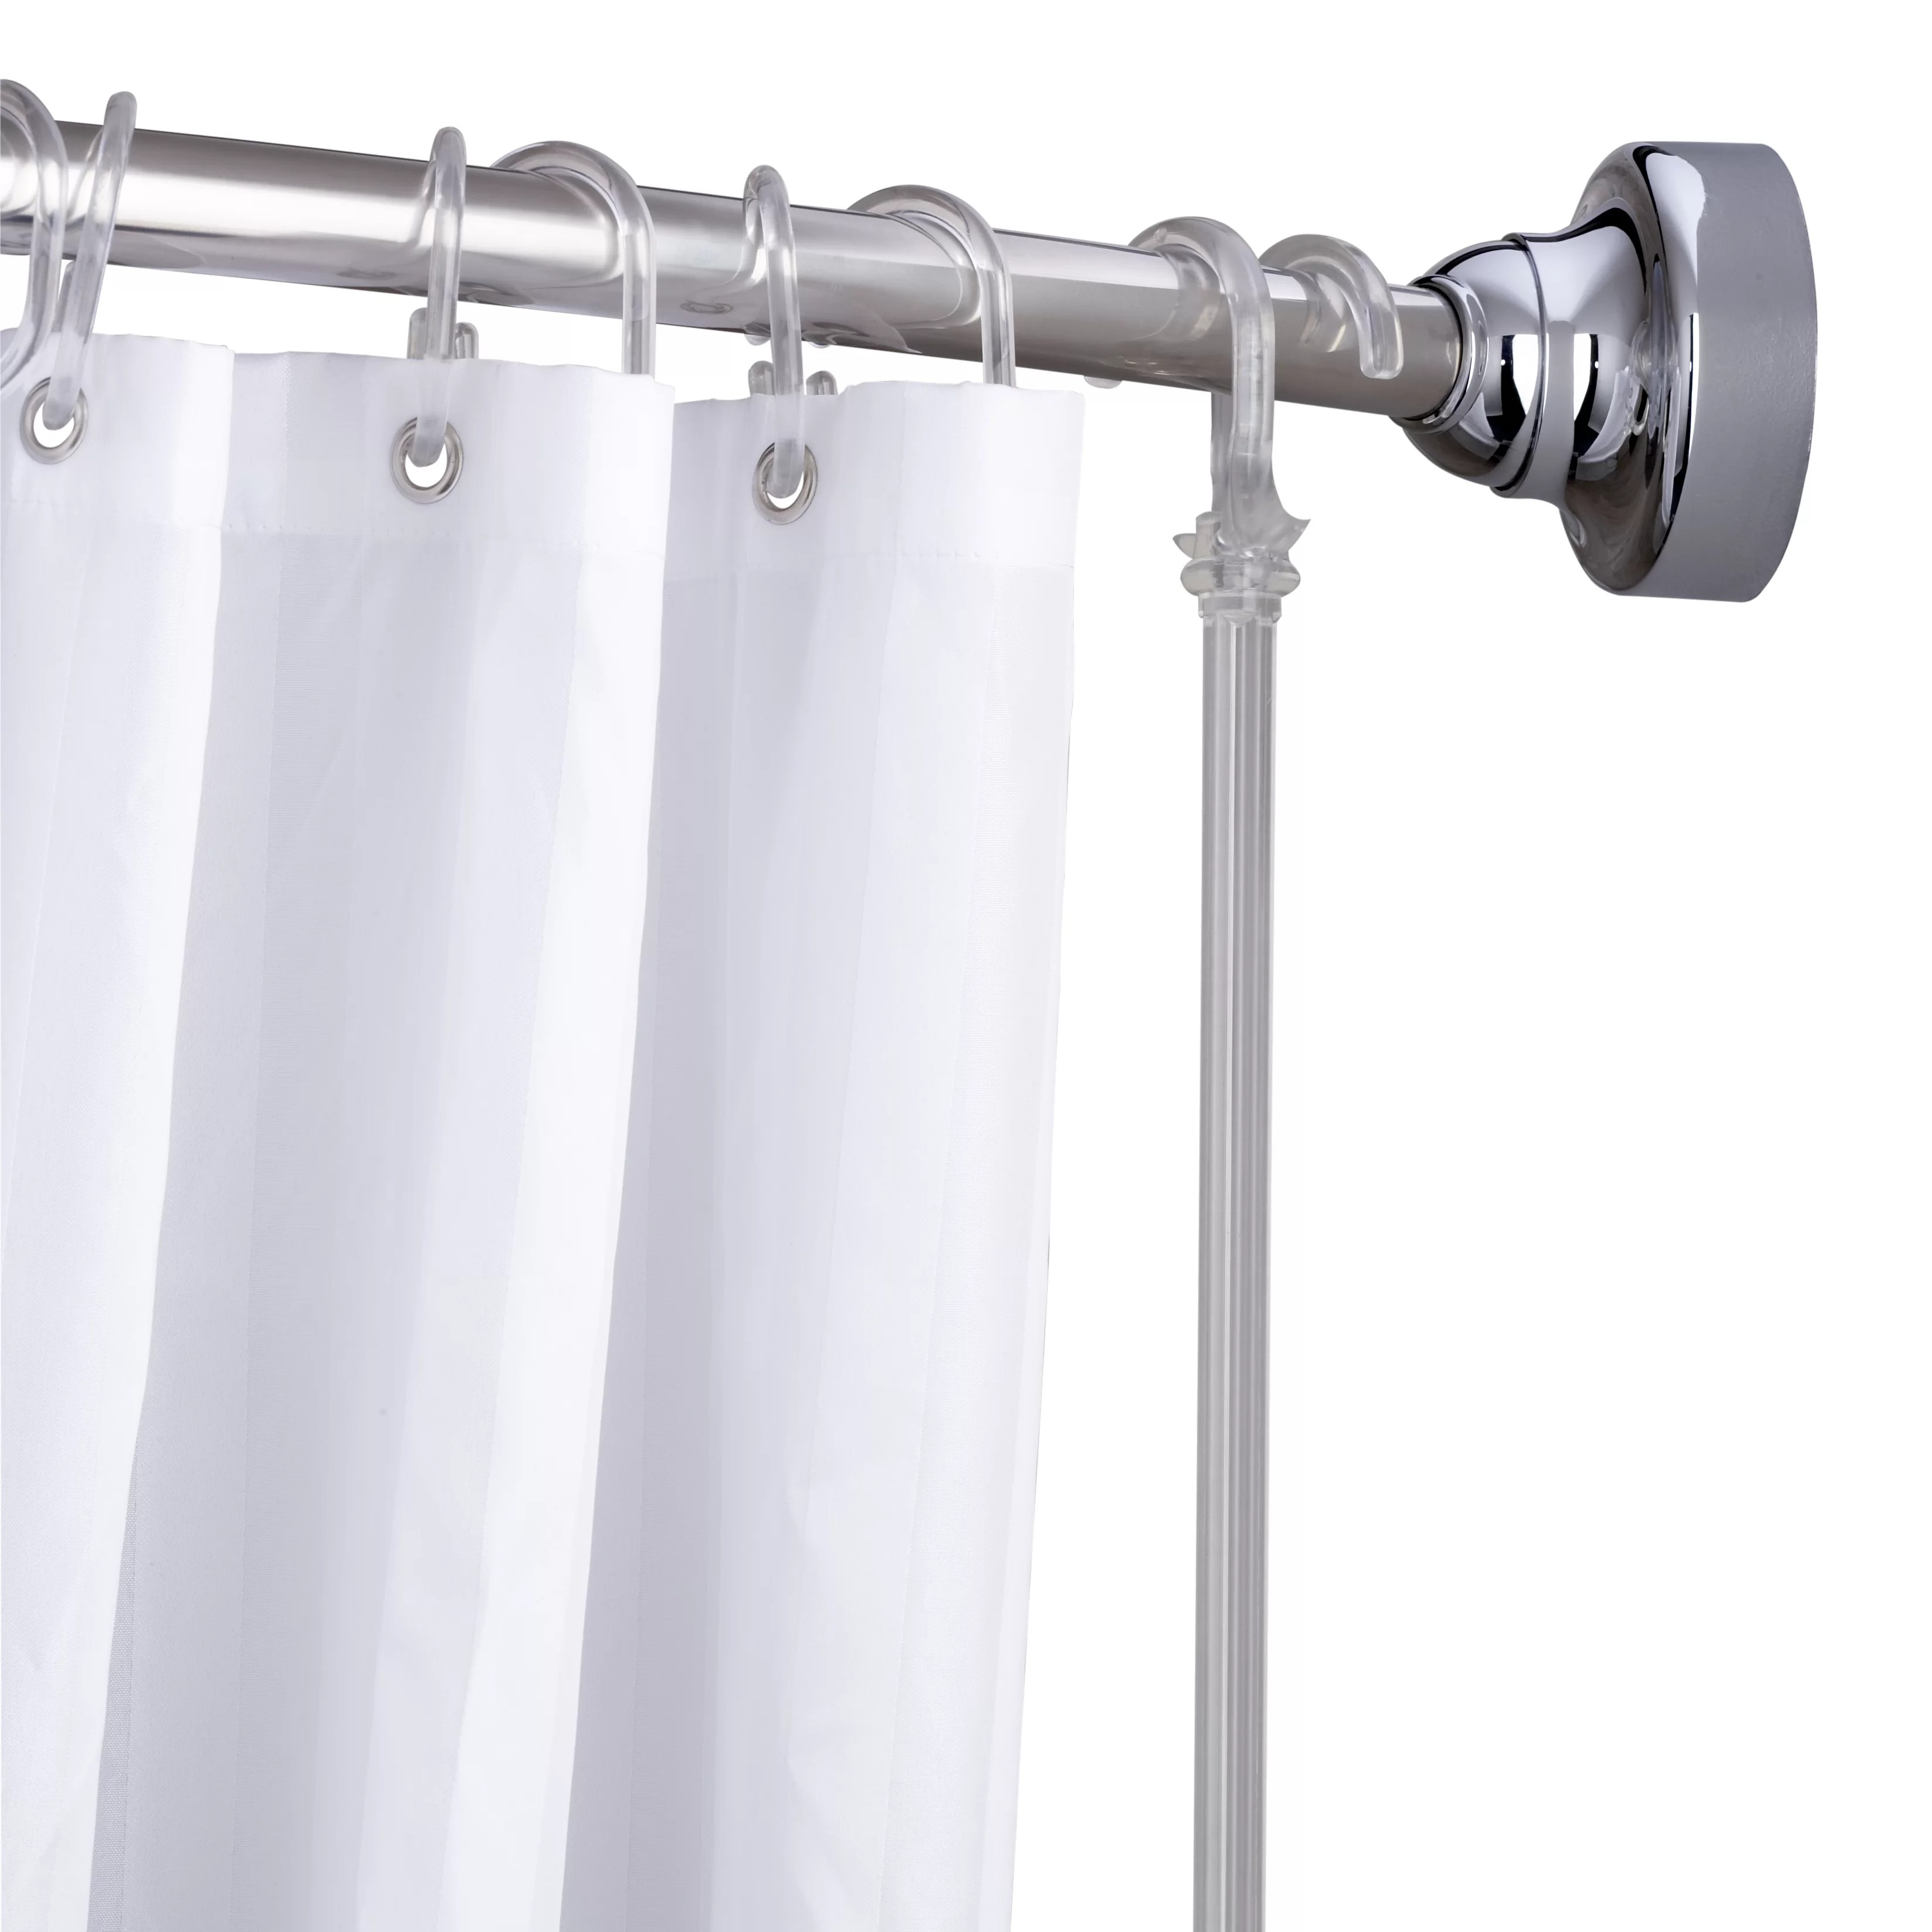 Unique Shower Curtain Rods Space Saver 60